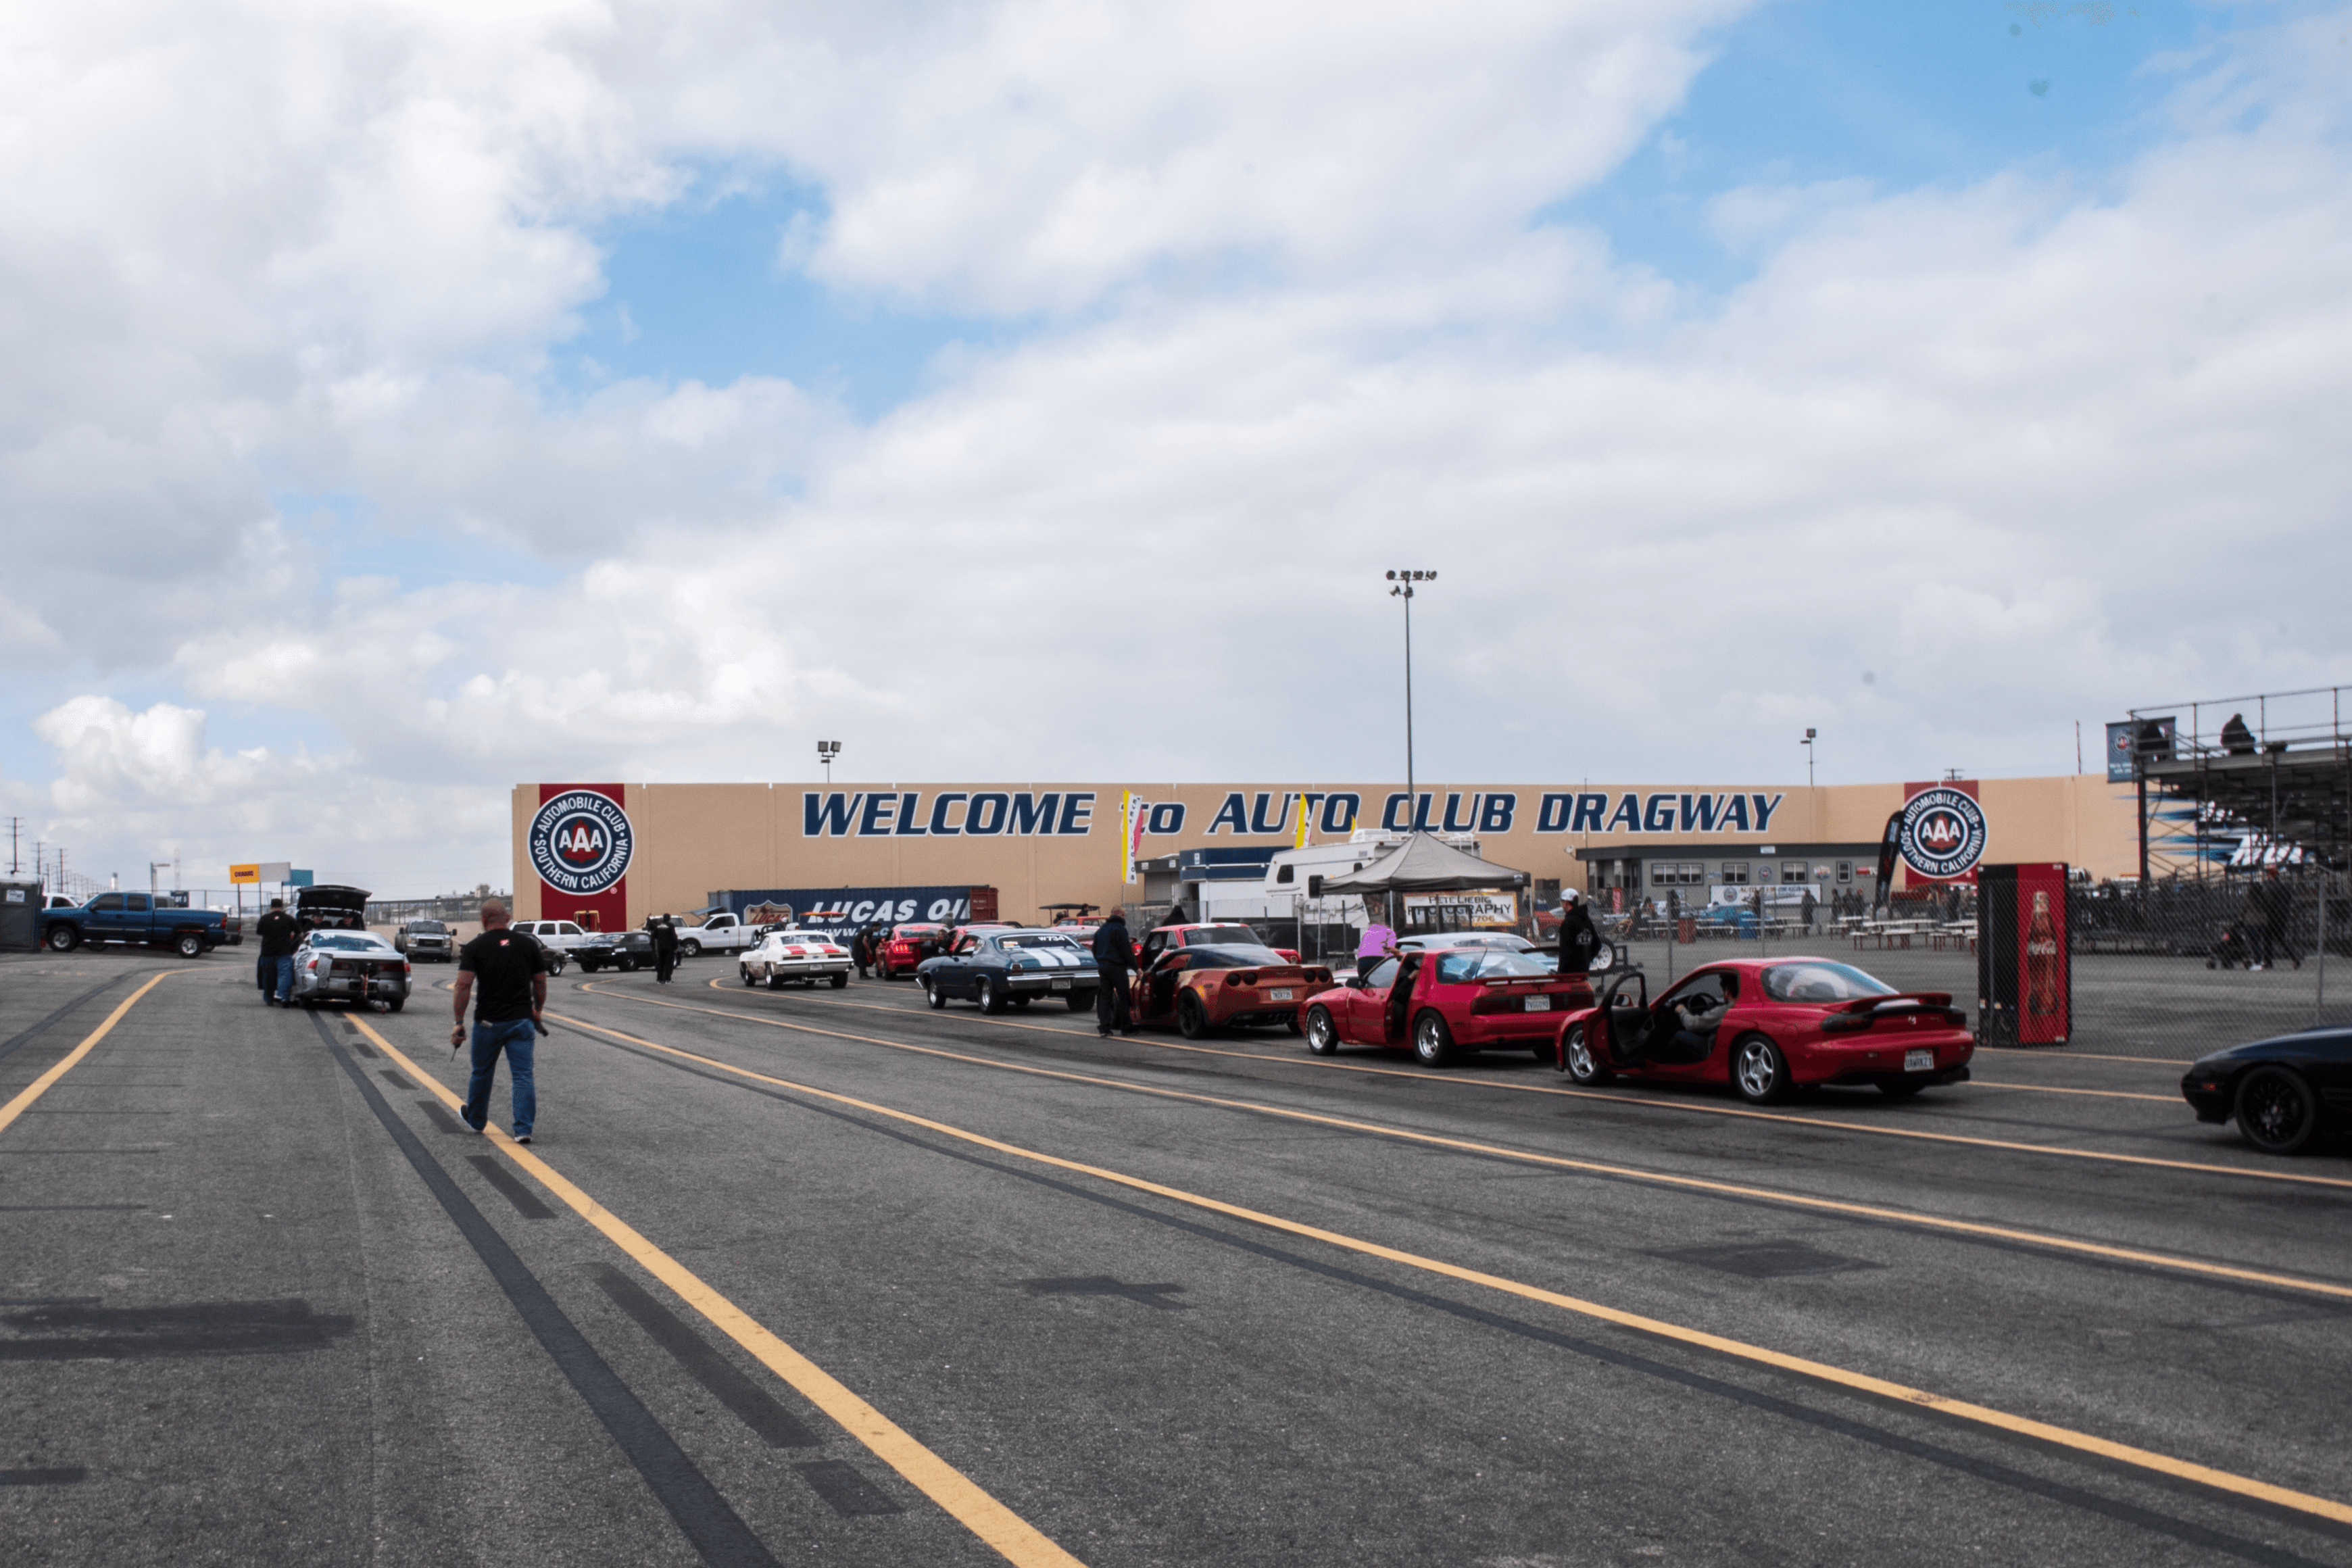 Welcome to Auto Club Dragway